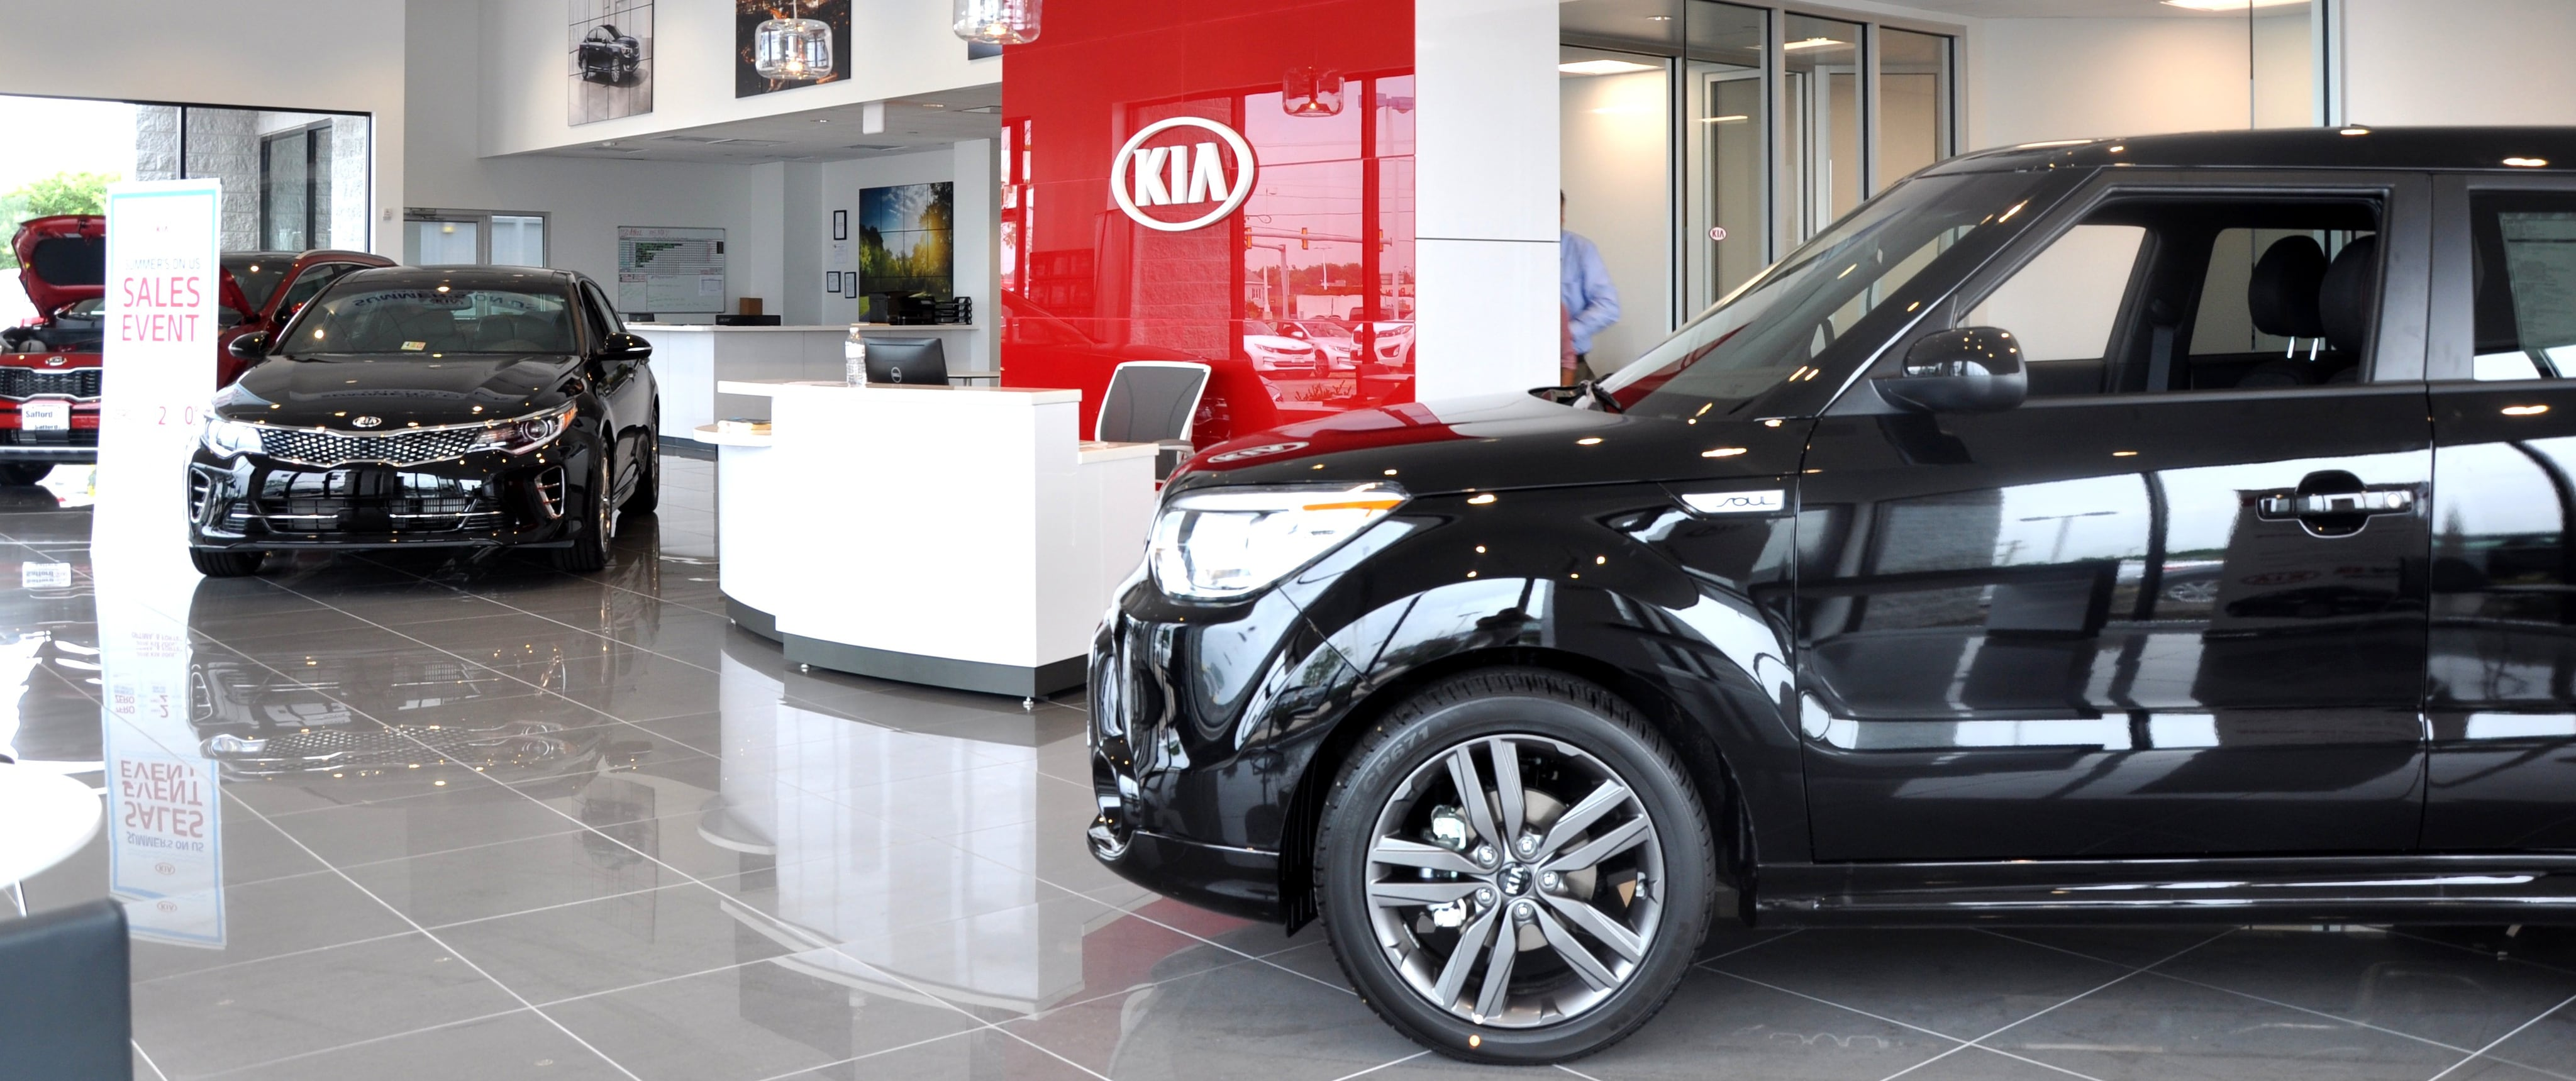 com my in billion ia near logo kia dealership website dealer adchoices of new location city iowa by